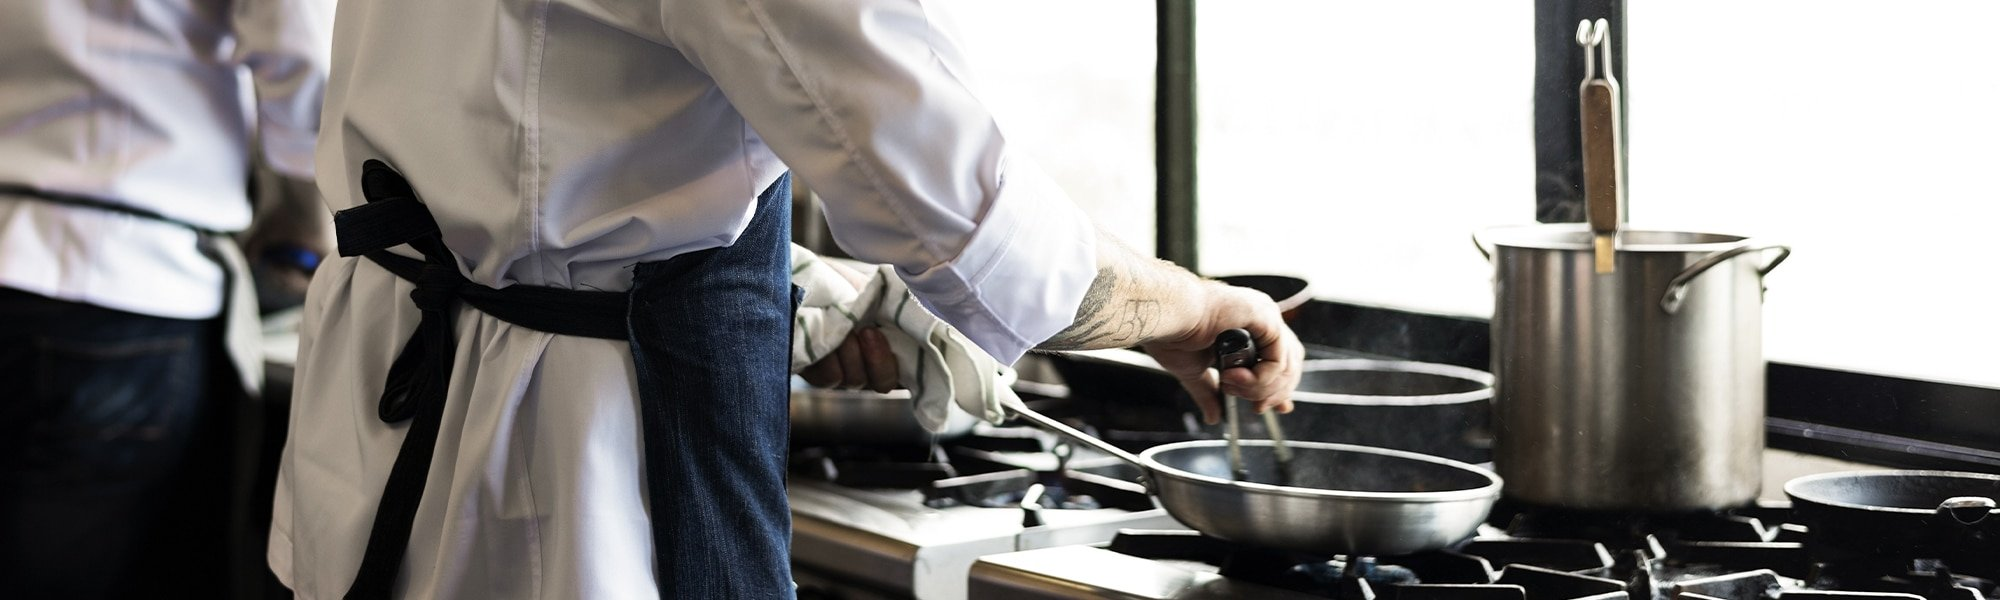 How To Attract Top-Tier Chefs